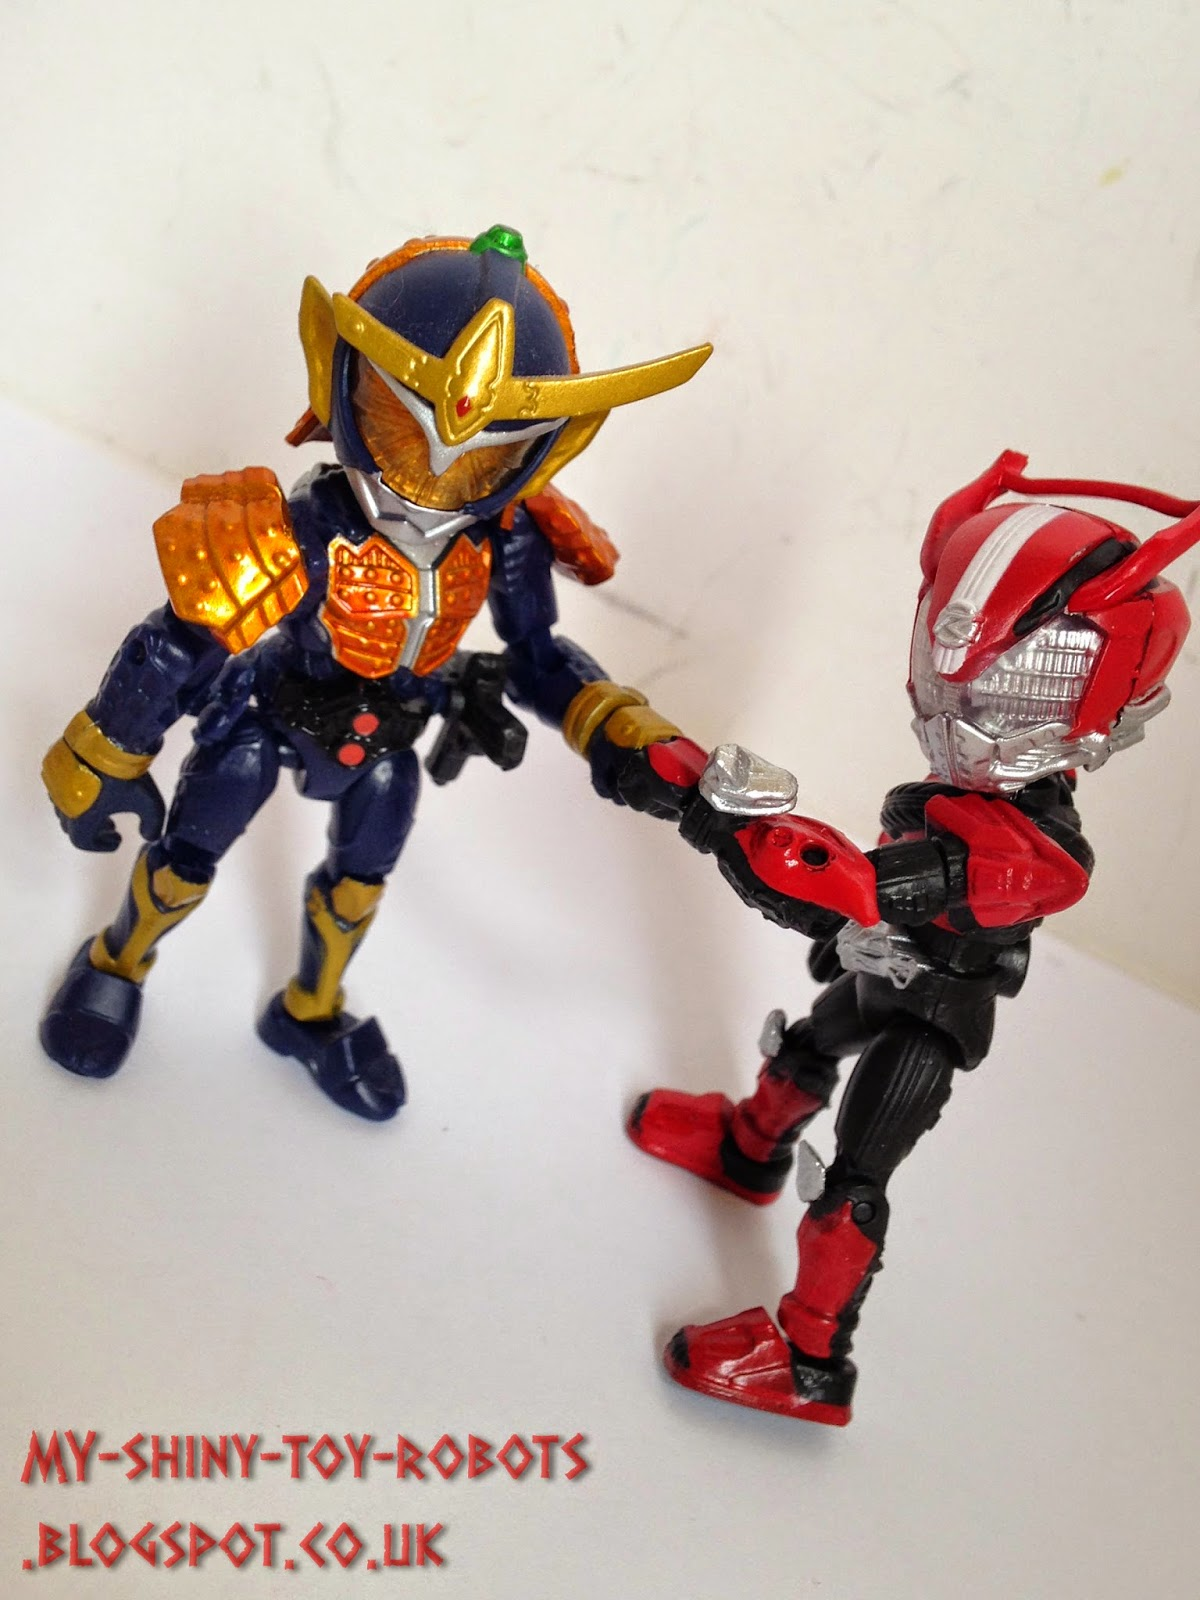 Teaming up with Gaim